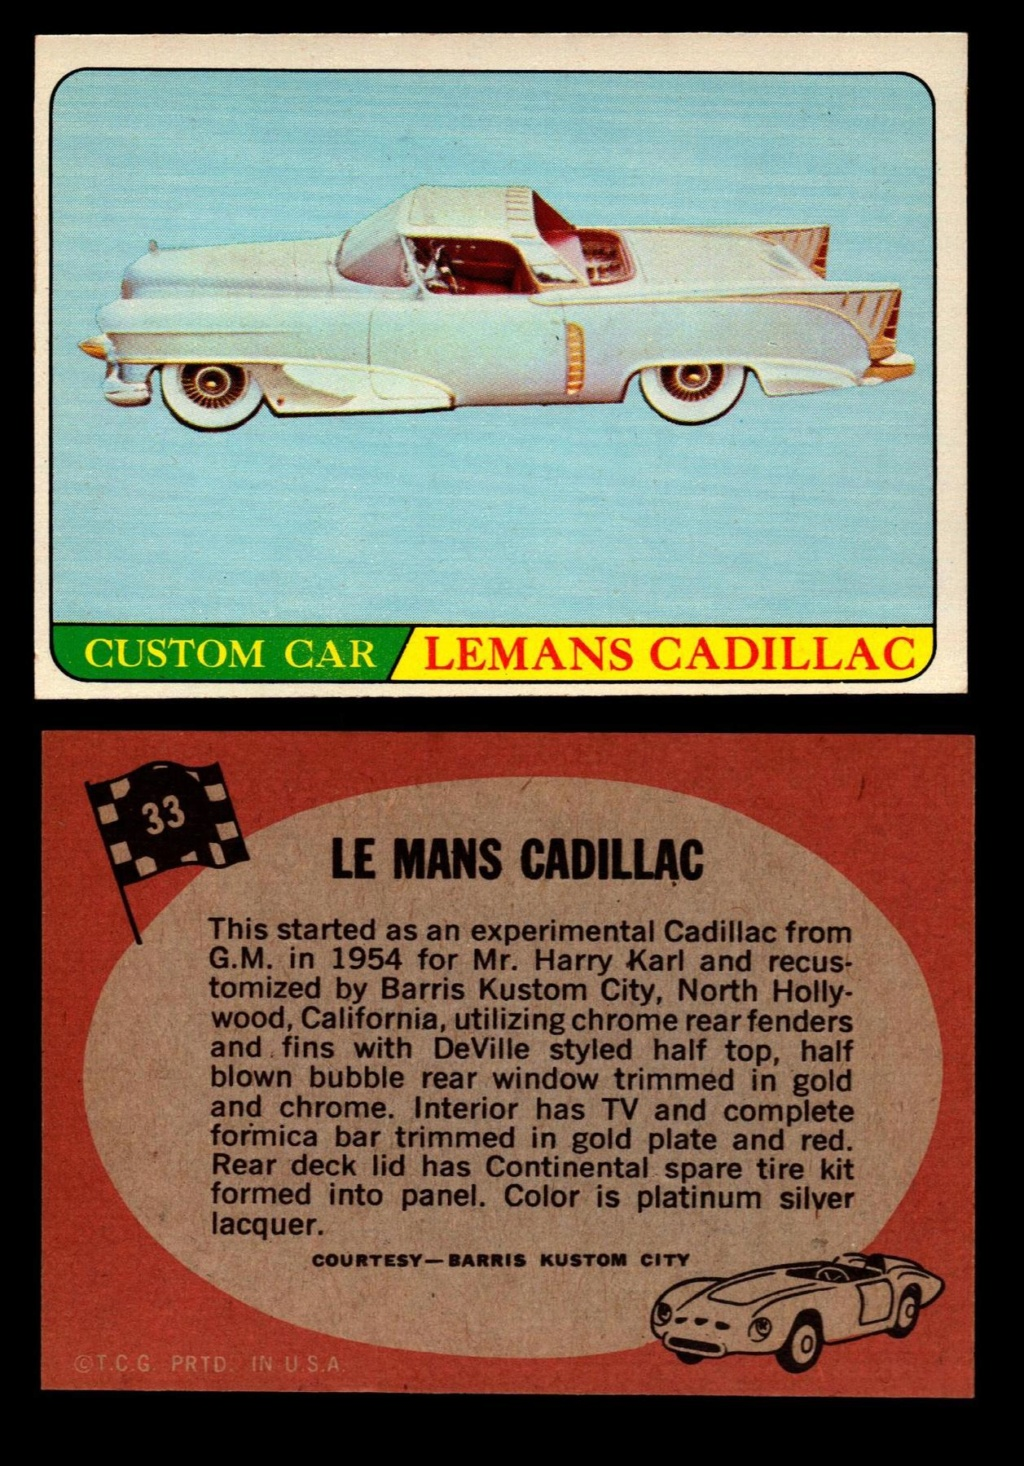 Hot Rods Topps - Vintage Trading Cards 1968 - Custom car - Dragster - Racer - Dream car - Barris Kustom City - Ed Roth Darrill Starbird, Gene Winfield, Bill Cuchenberry - Page 2 33_5a610